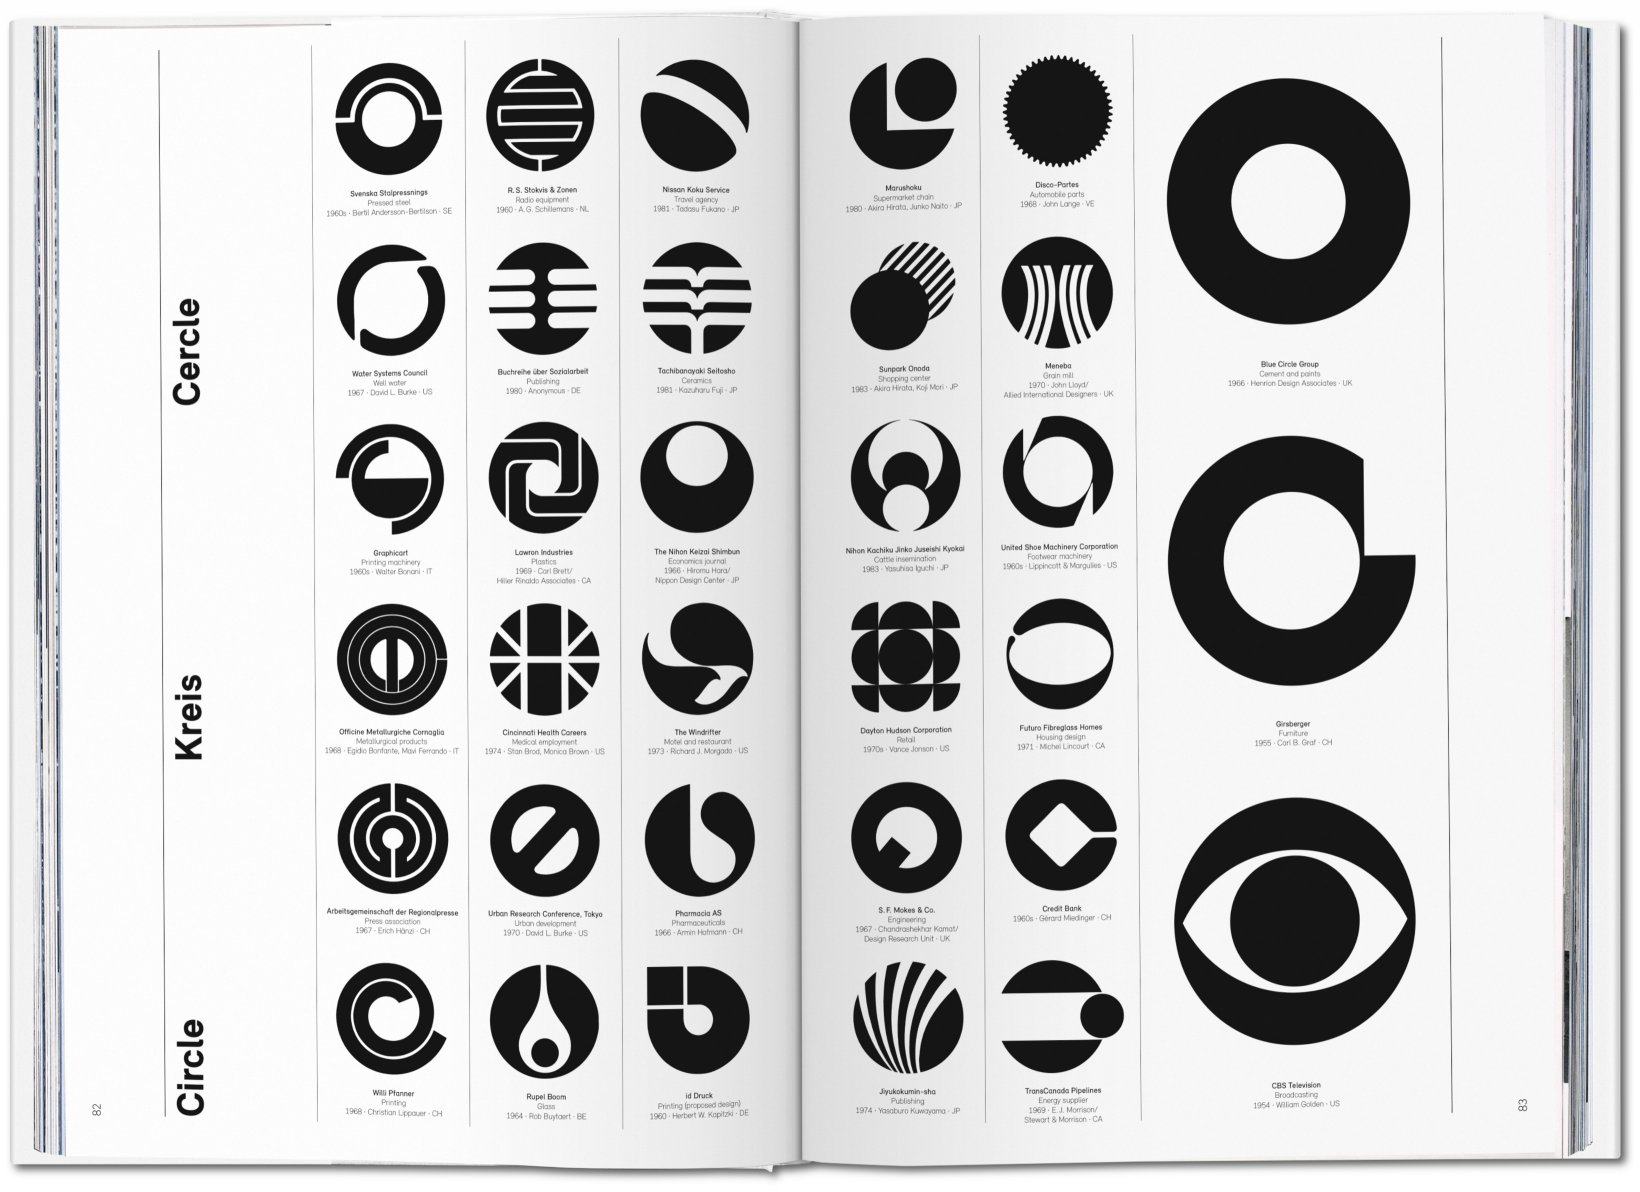 5 Things to Keep in Mind When Designing a Logo